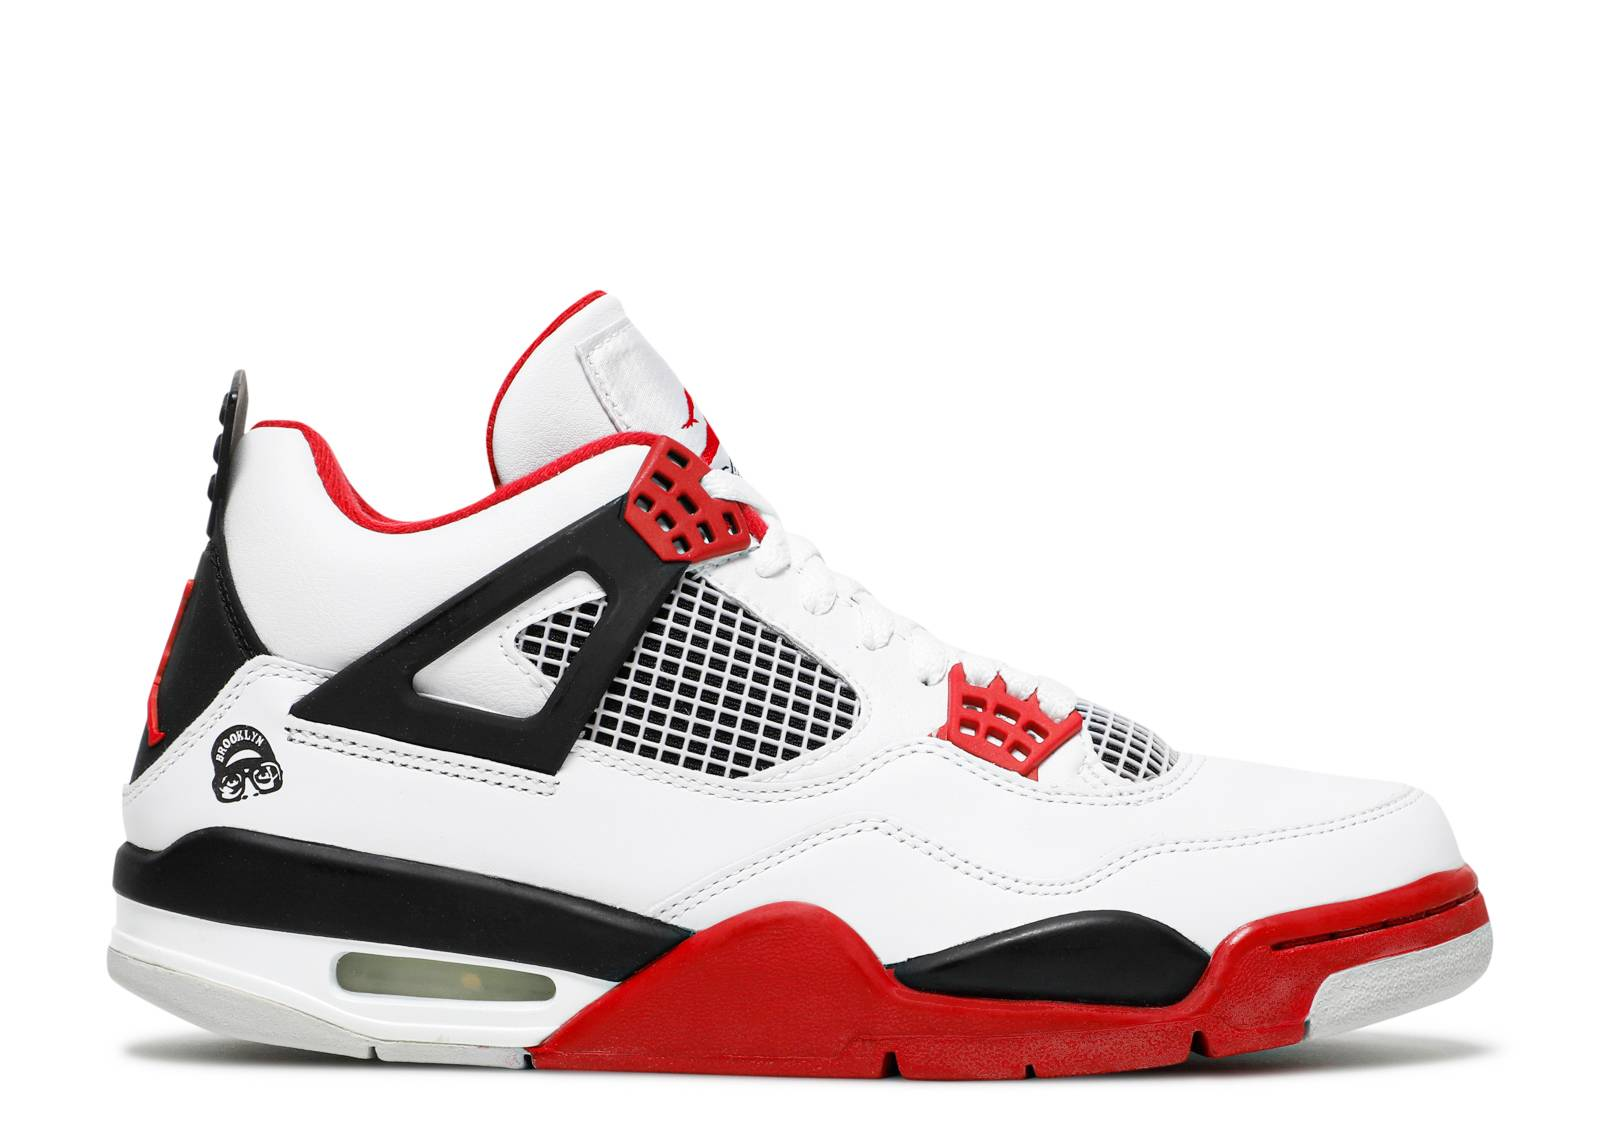 Nike Air Jordan 4 Retro Fire Red White/Varsity Red-Black Trainer Size 8 UK